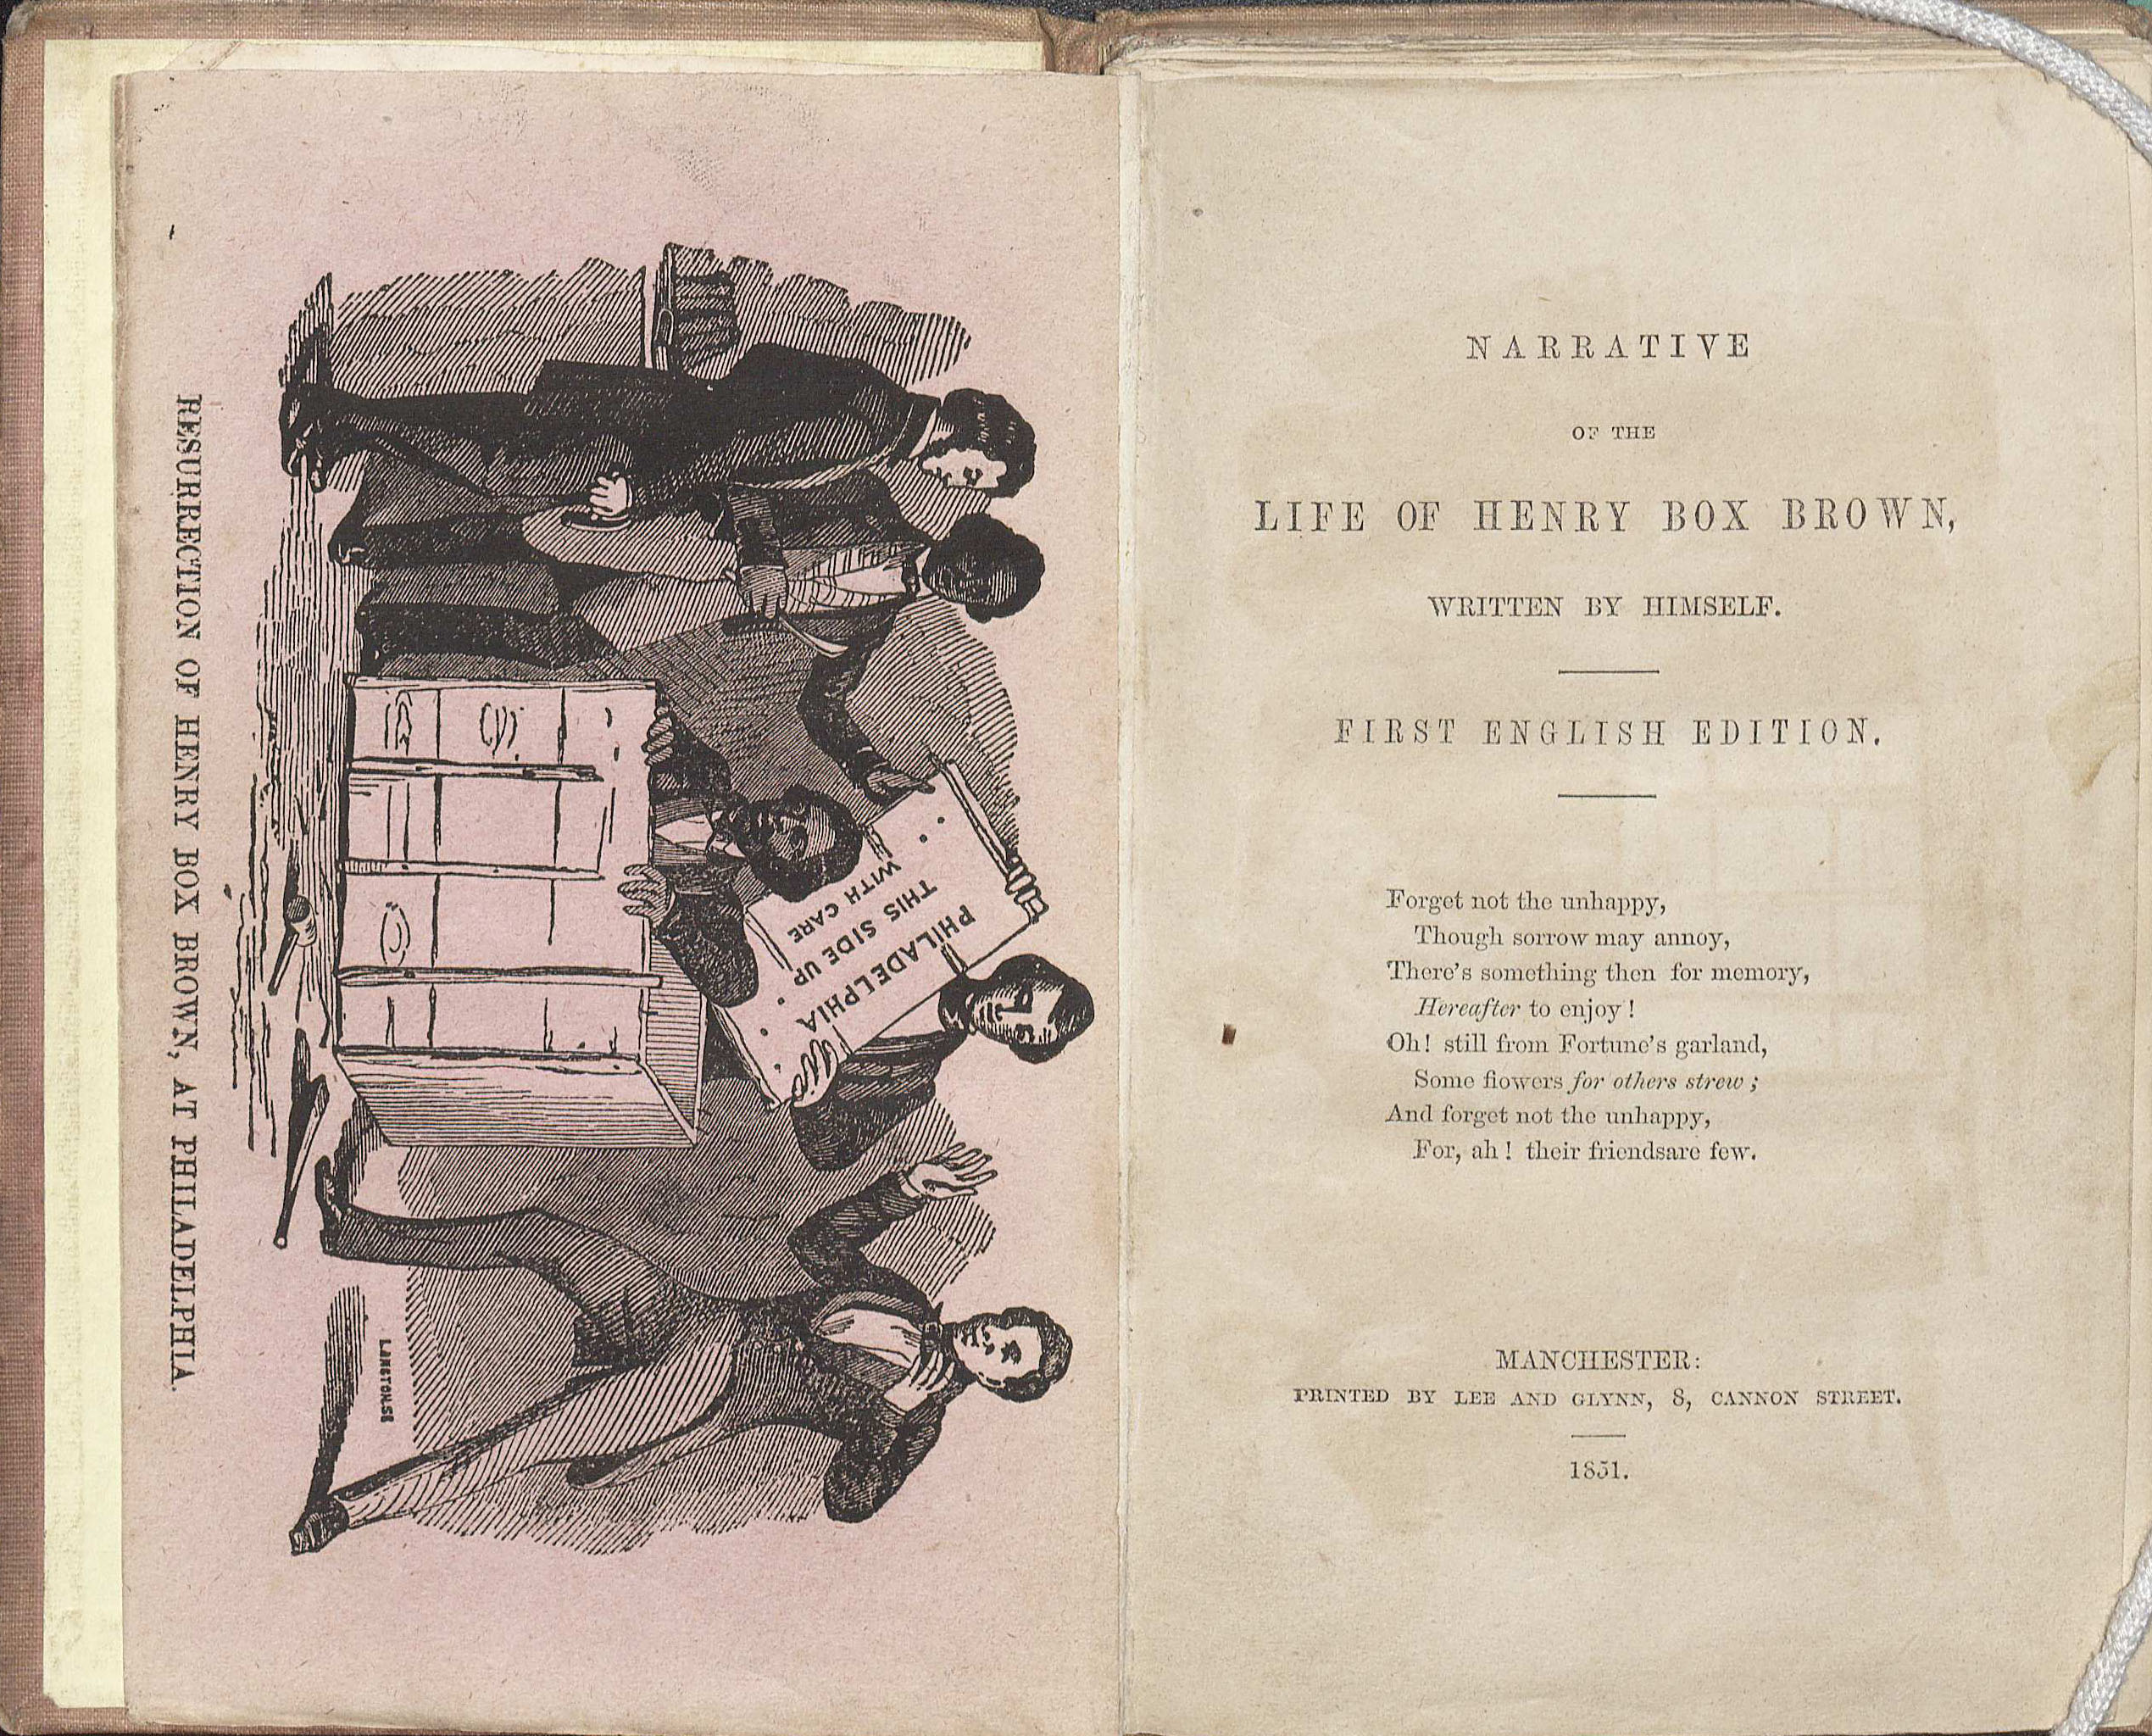 Frontispiece and title page of the Narrative and Life of Henry Box Brown, 1851. (A 1851 .B785. Tracy W. McGregor Library of American History. Image by Petrina Jackson.)